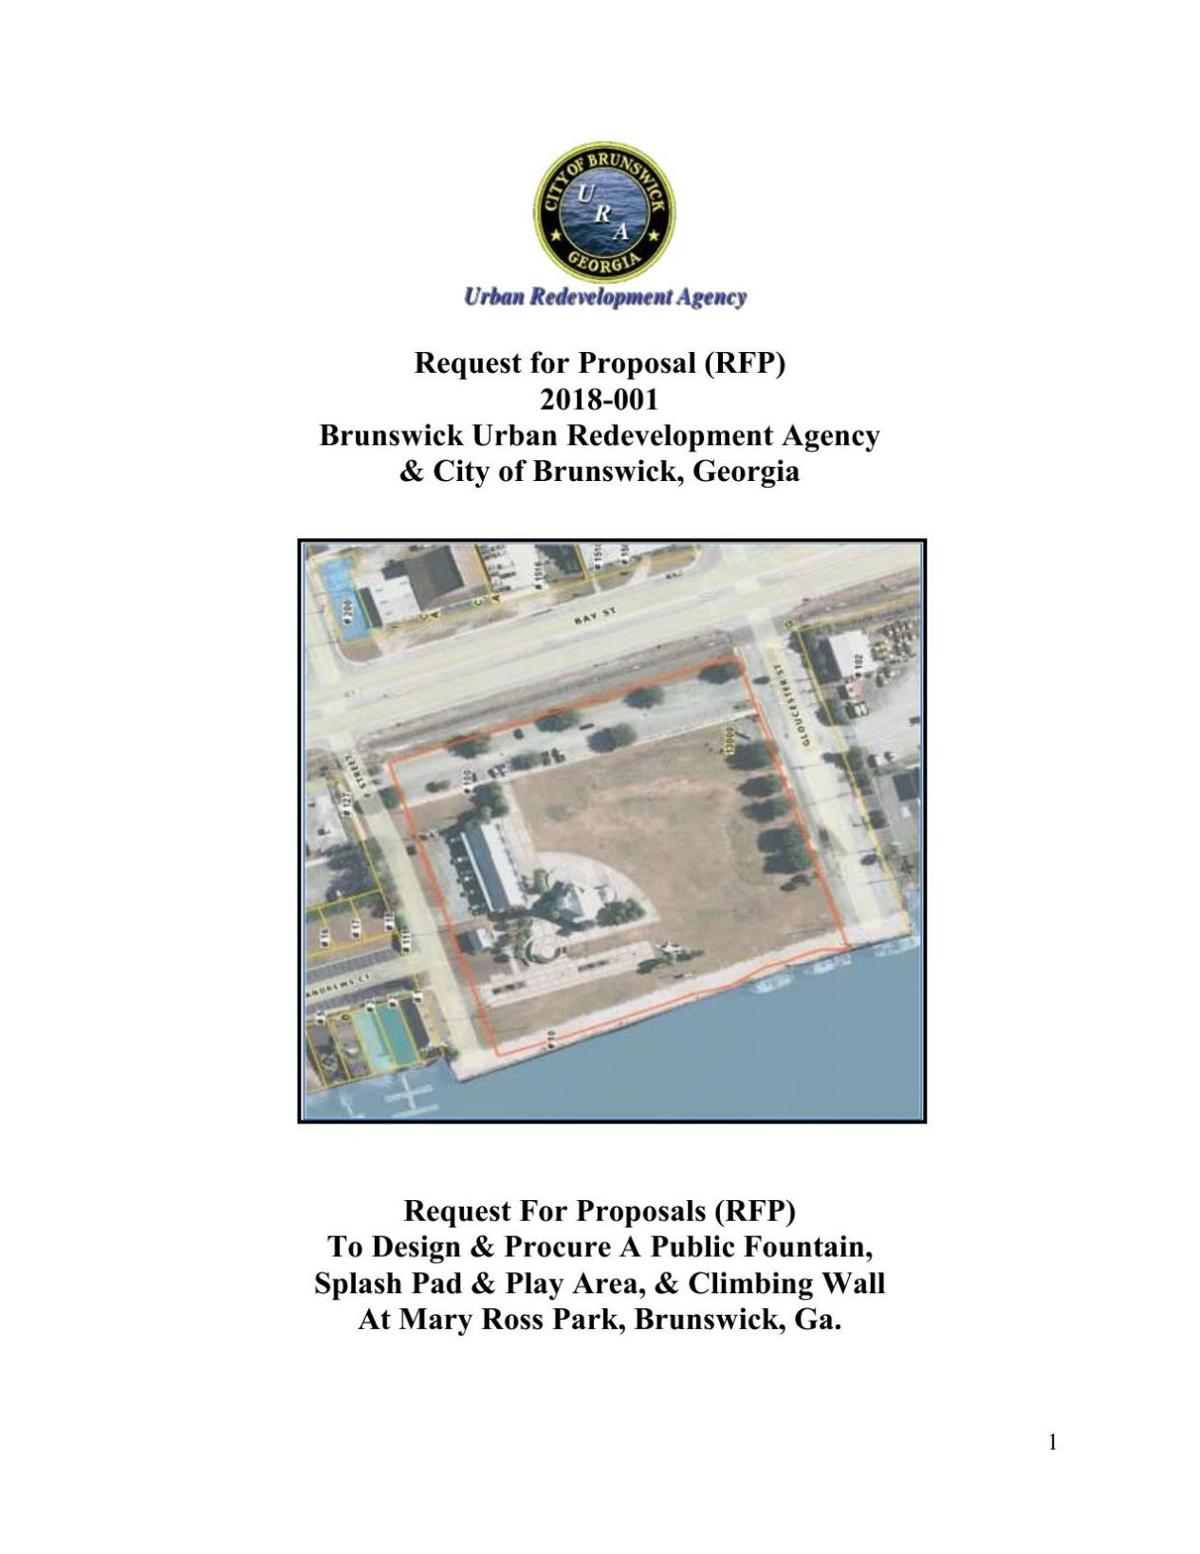 Pdf Brunswick Urban Redevelopment Agency Mary Ross Waterfront Park Request For Proposal